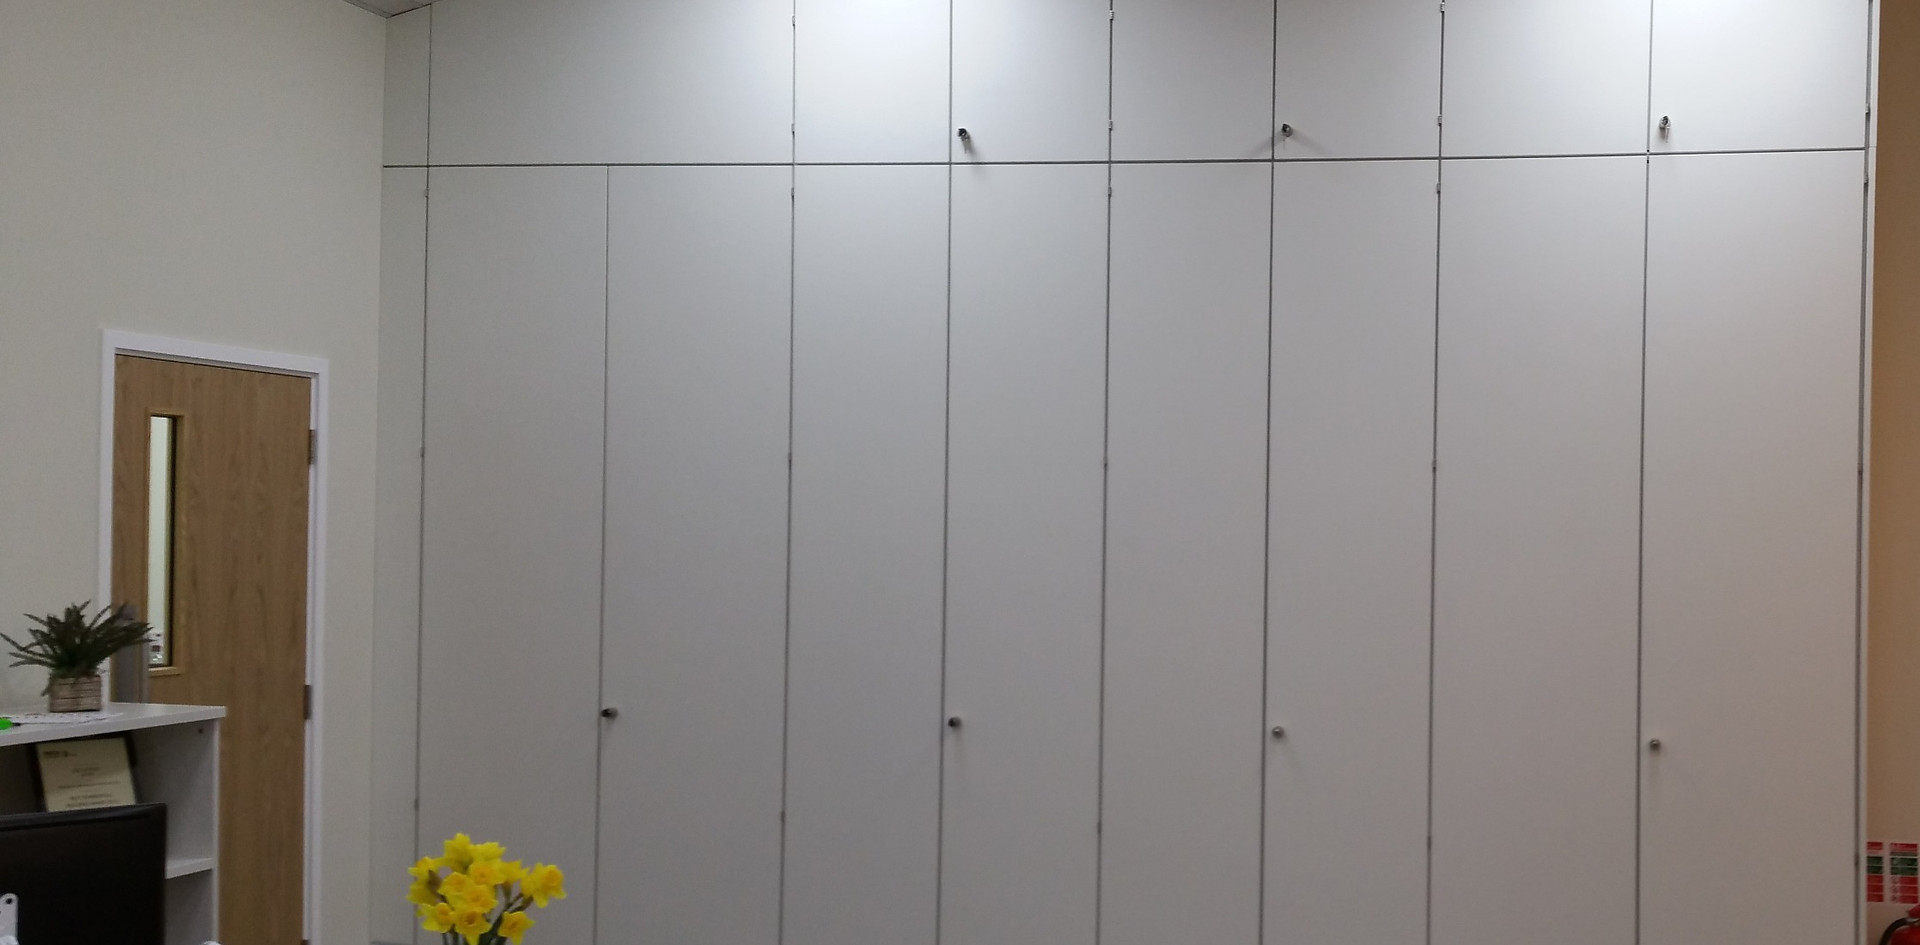 storagewall tallwall full height office storage cupboards sloping ceiling